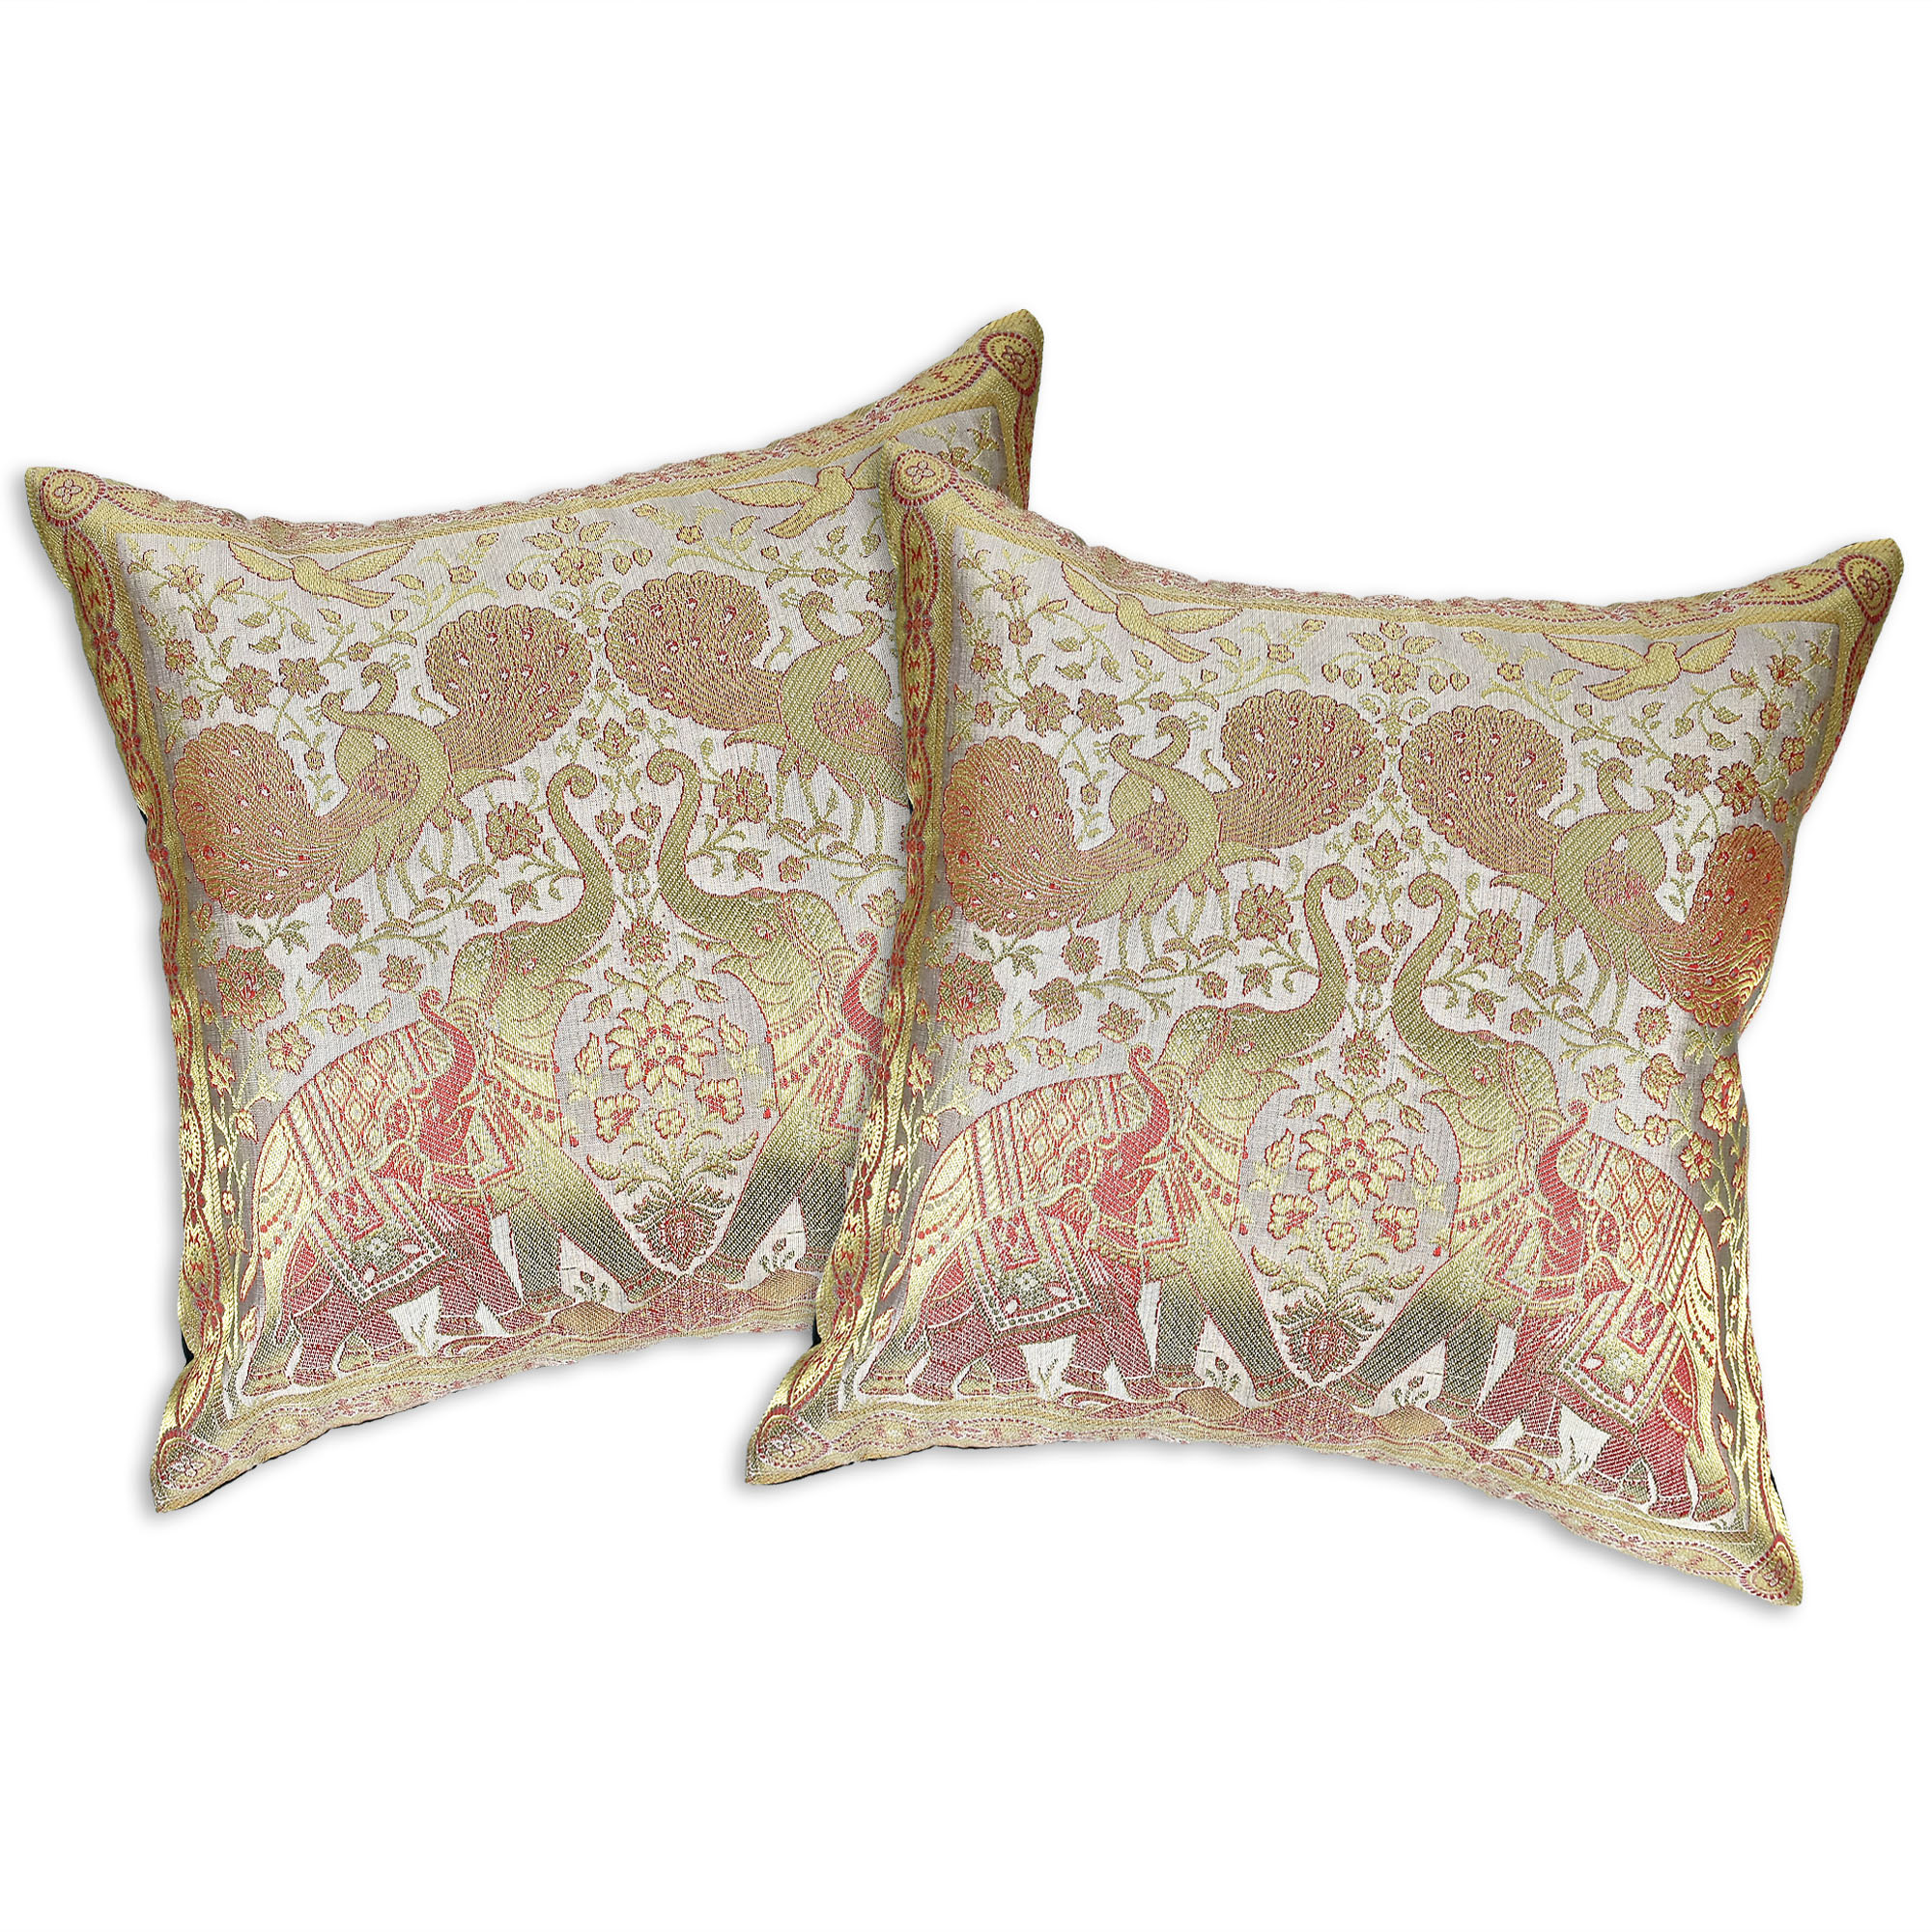 Featuring a traditional Siamese motif with elephants, peacocks and birds, these decorative throw pillow covers deliver a ...